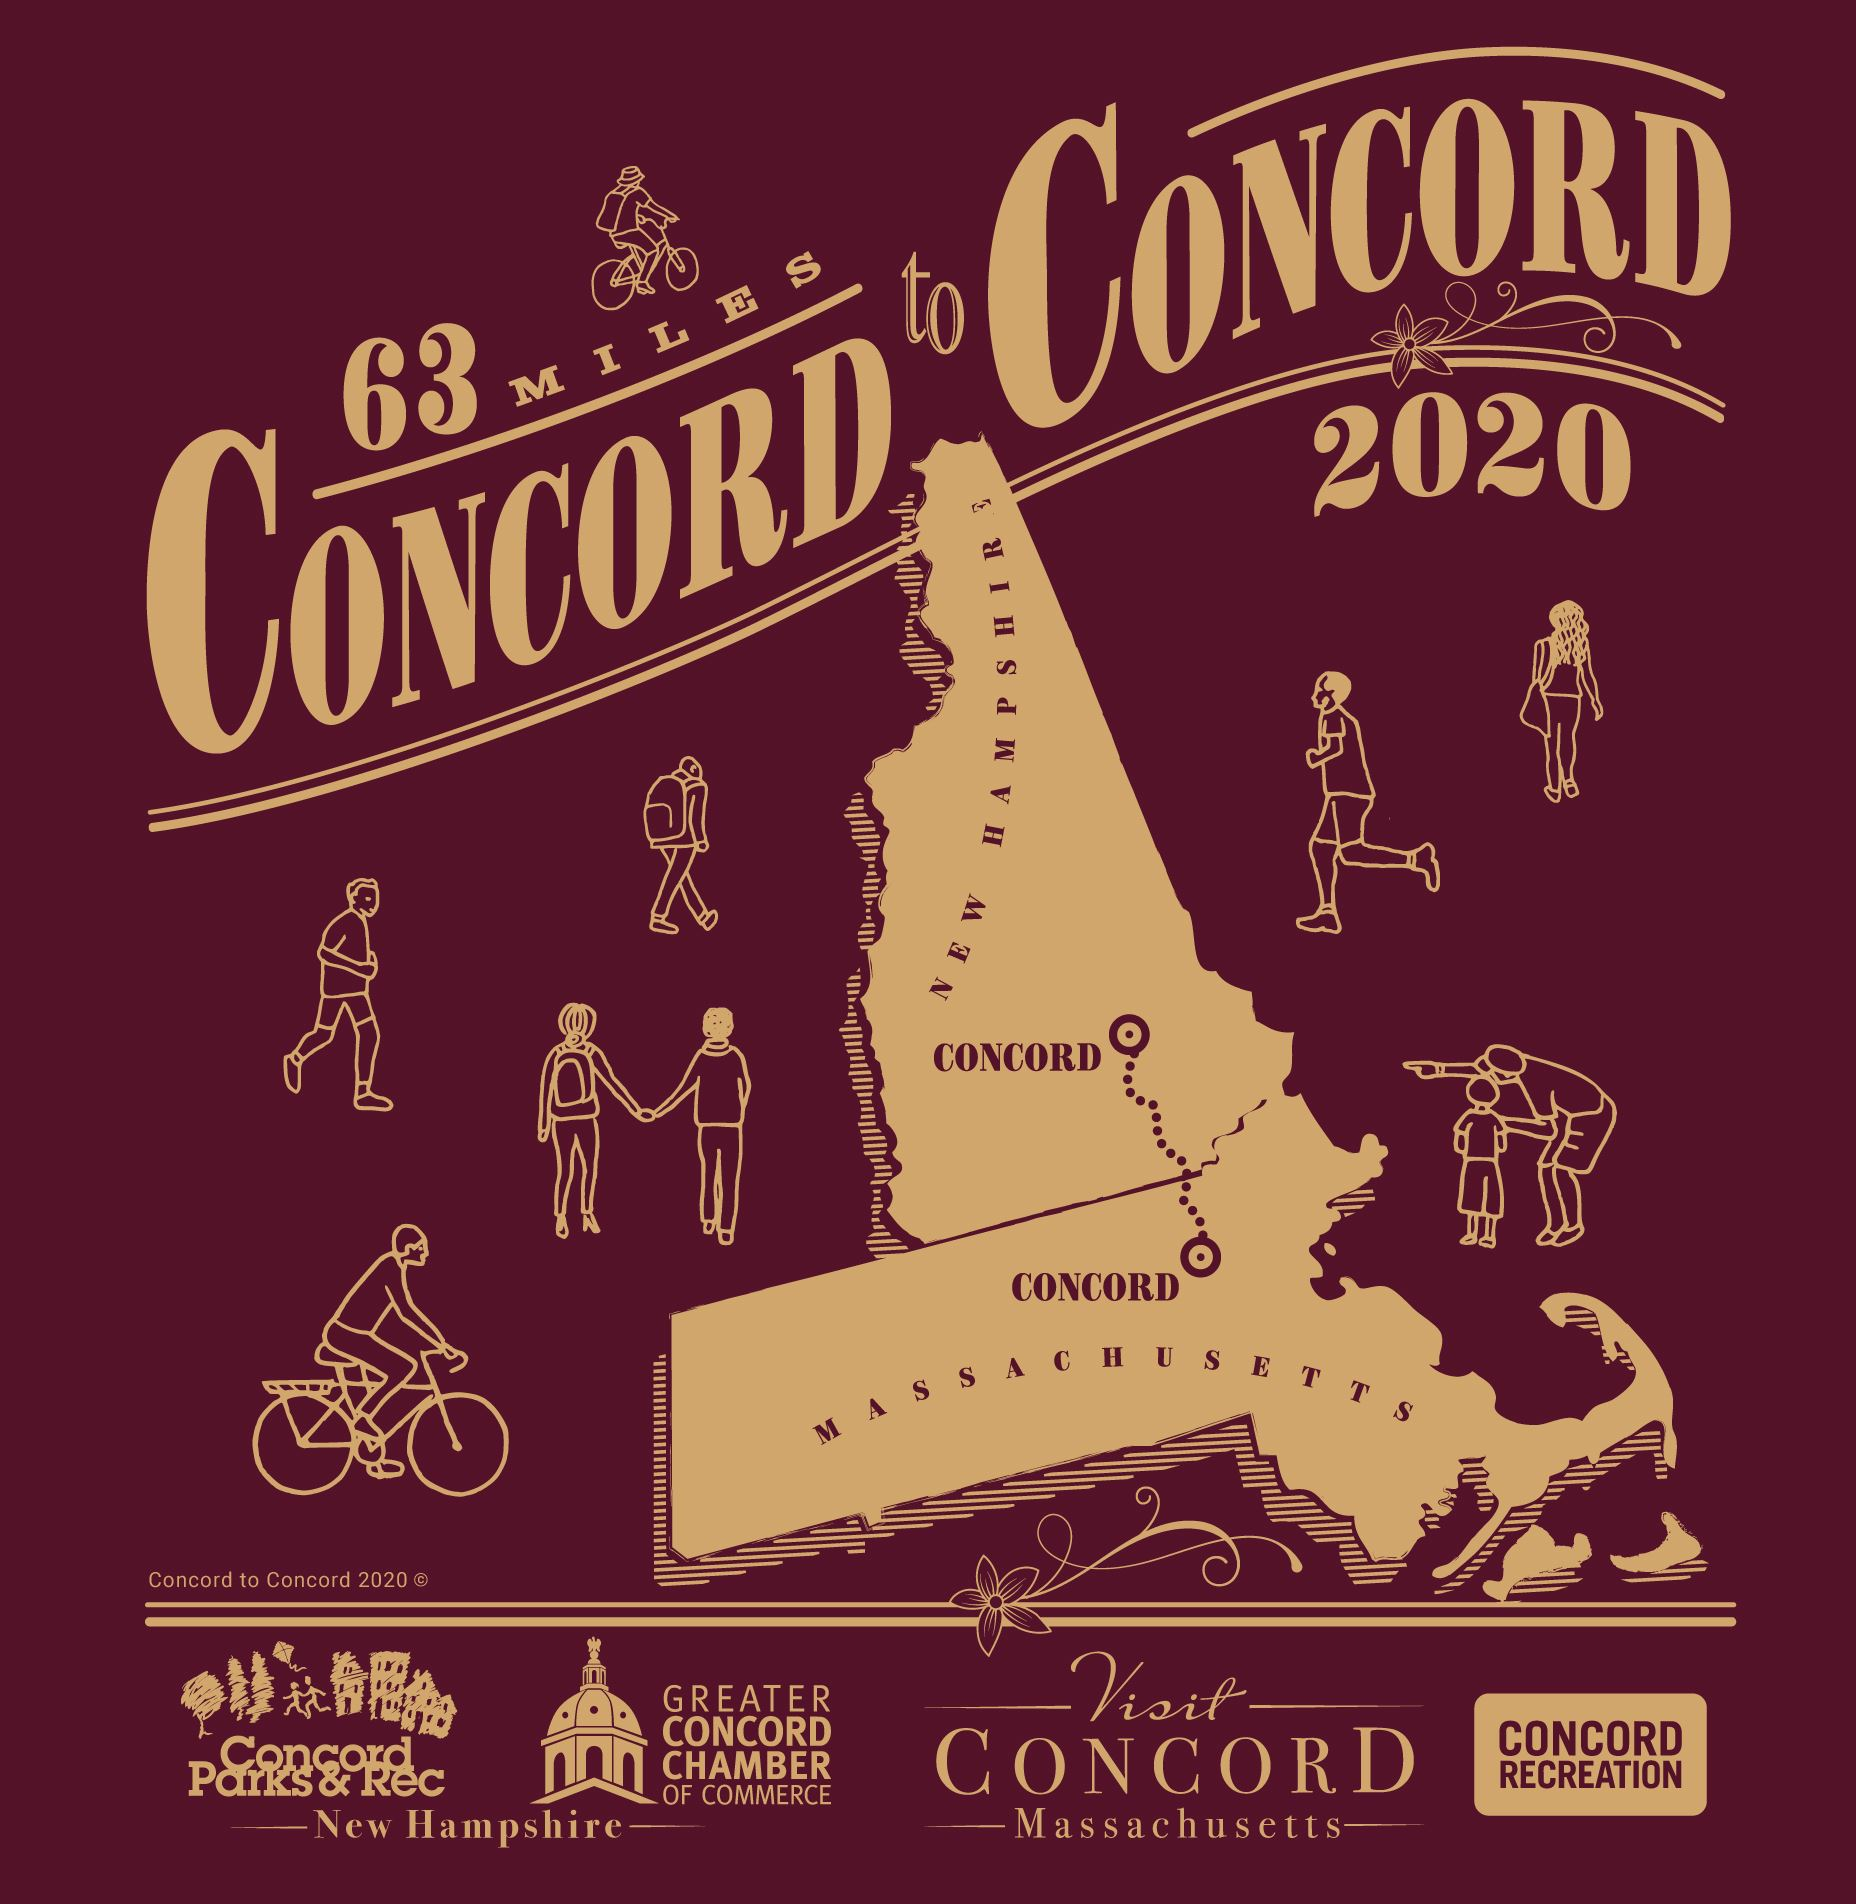 T shirt for concord to concord